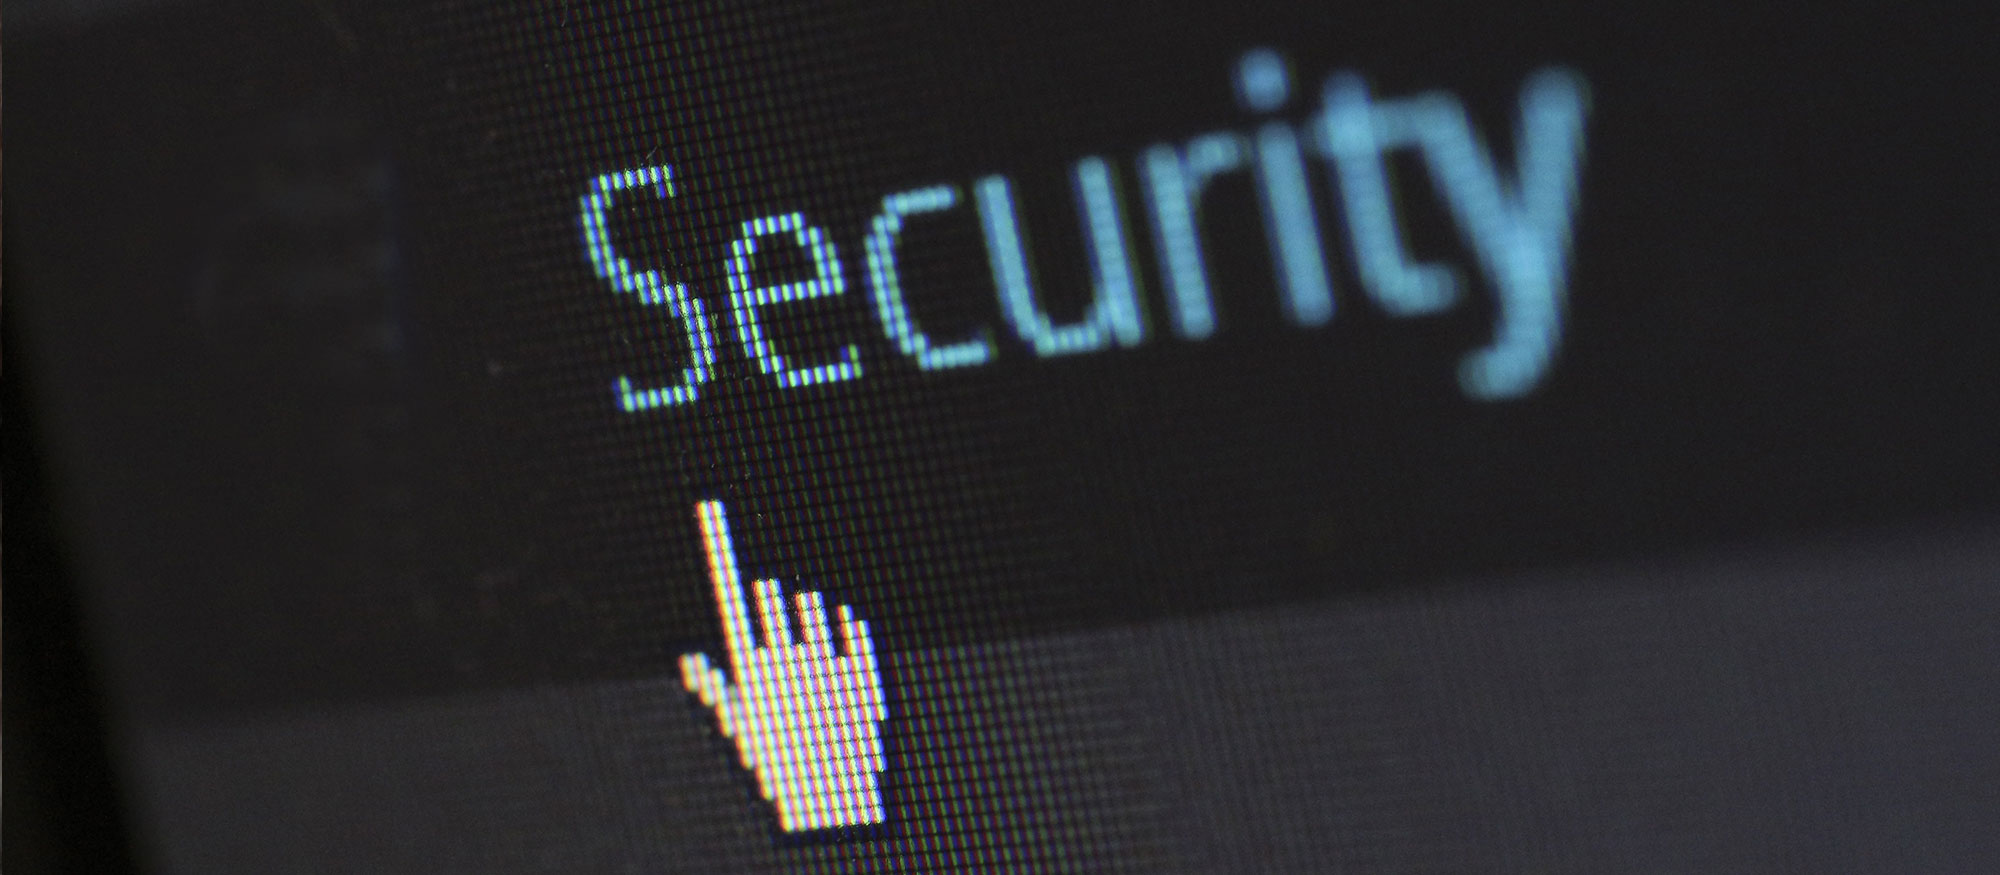 blogpost-cybersecurity-images1